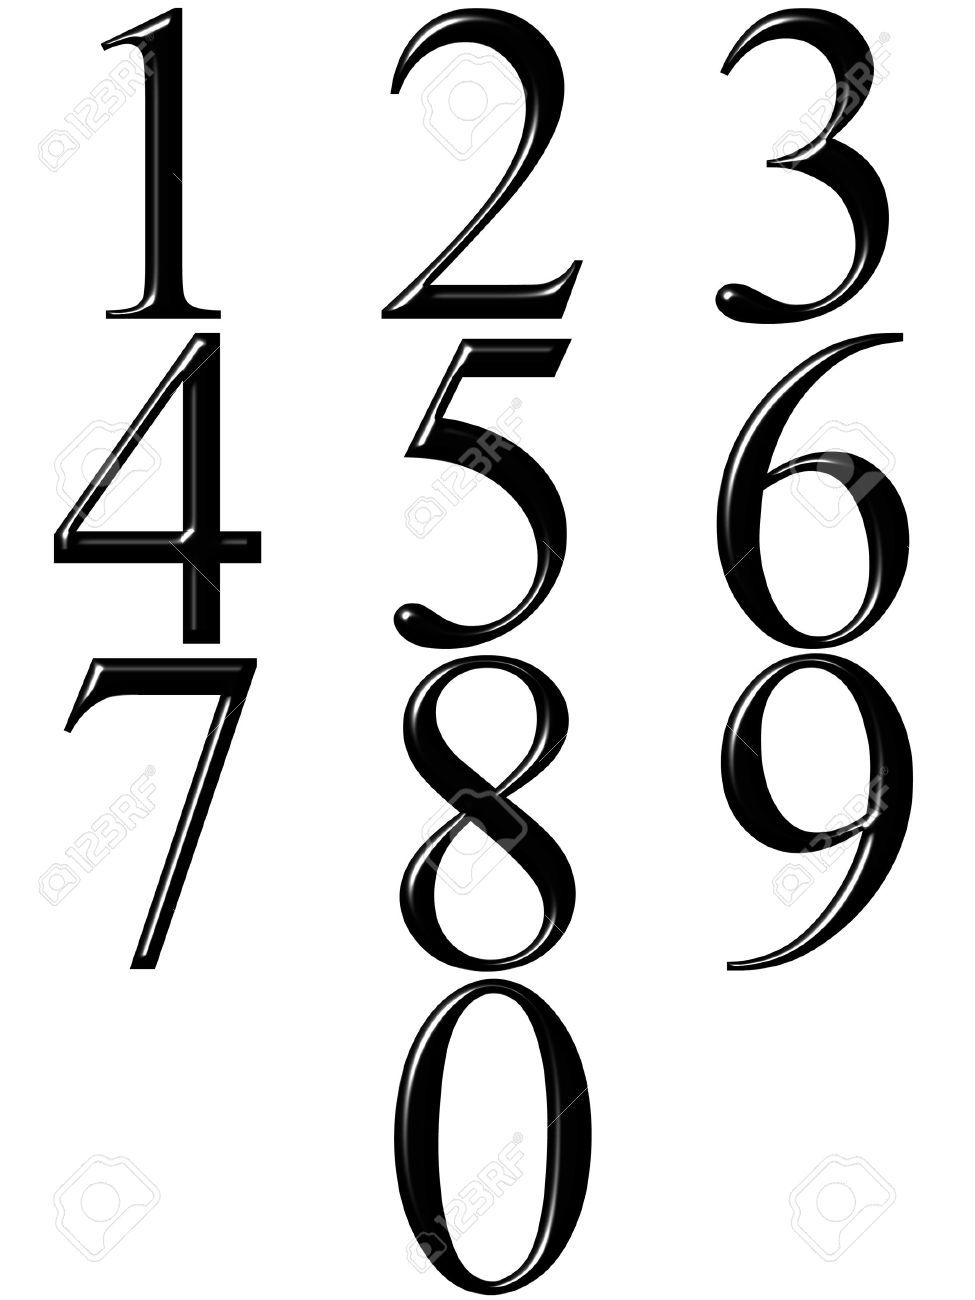 Numbers clipart black and white 4 » Clipart Portal.